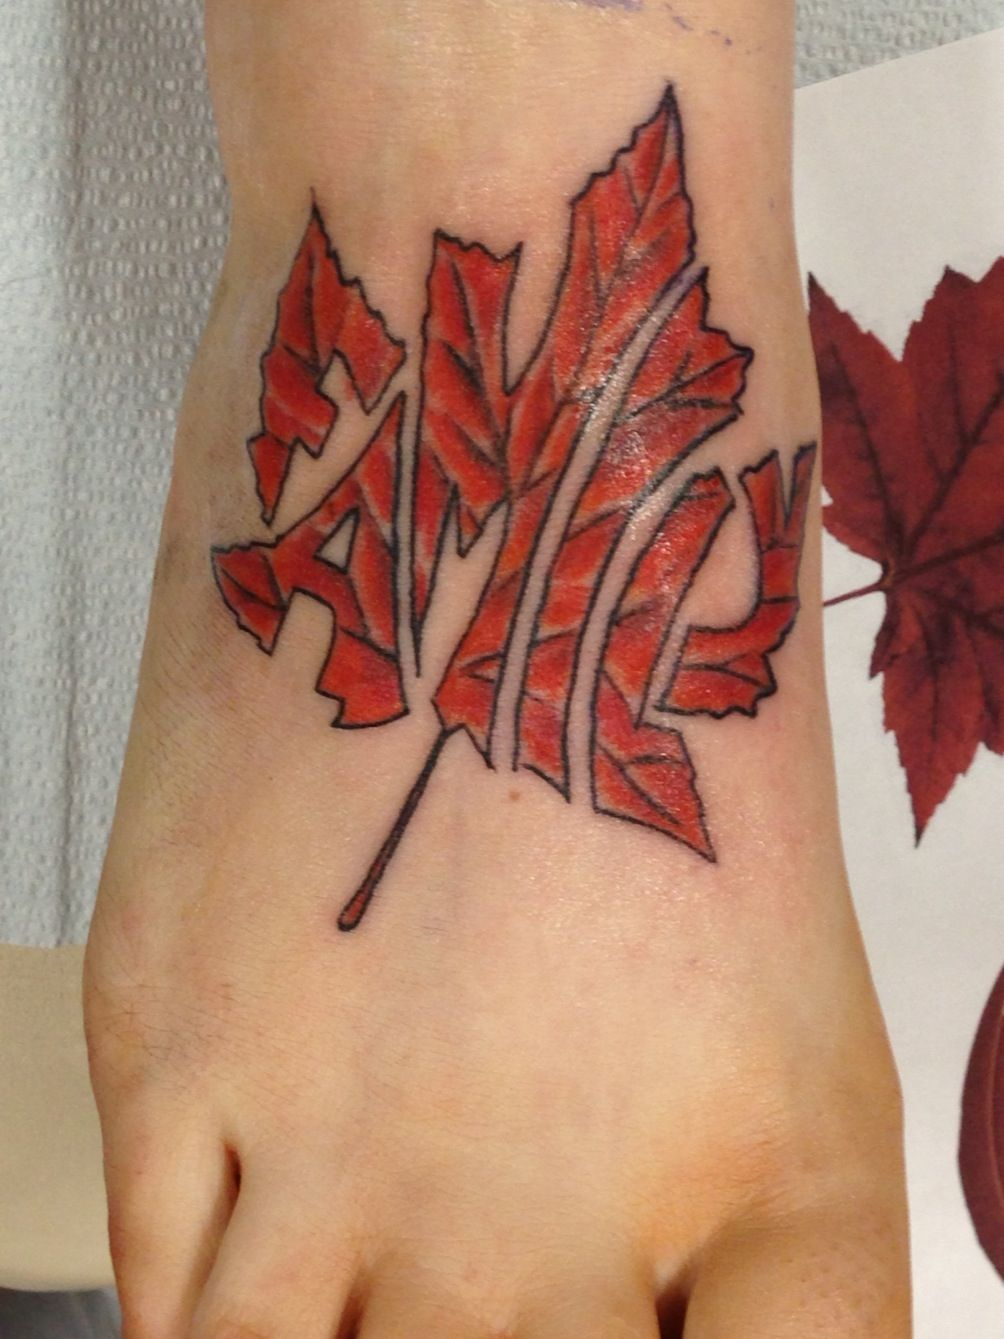 My Canadian family tattoo on my foot. Ouch! | Tatts with meaning ...